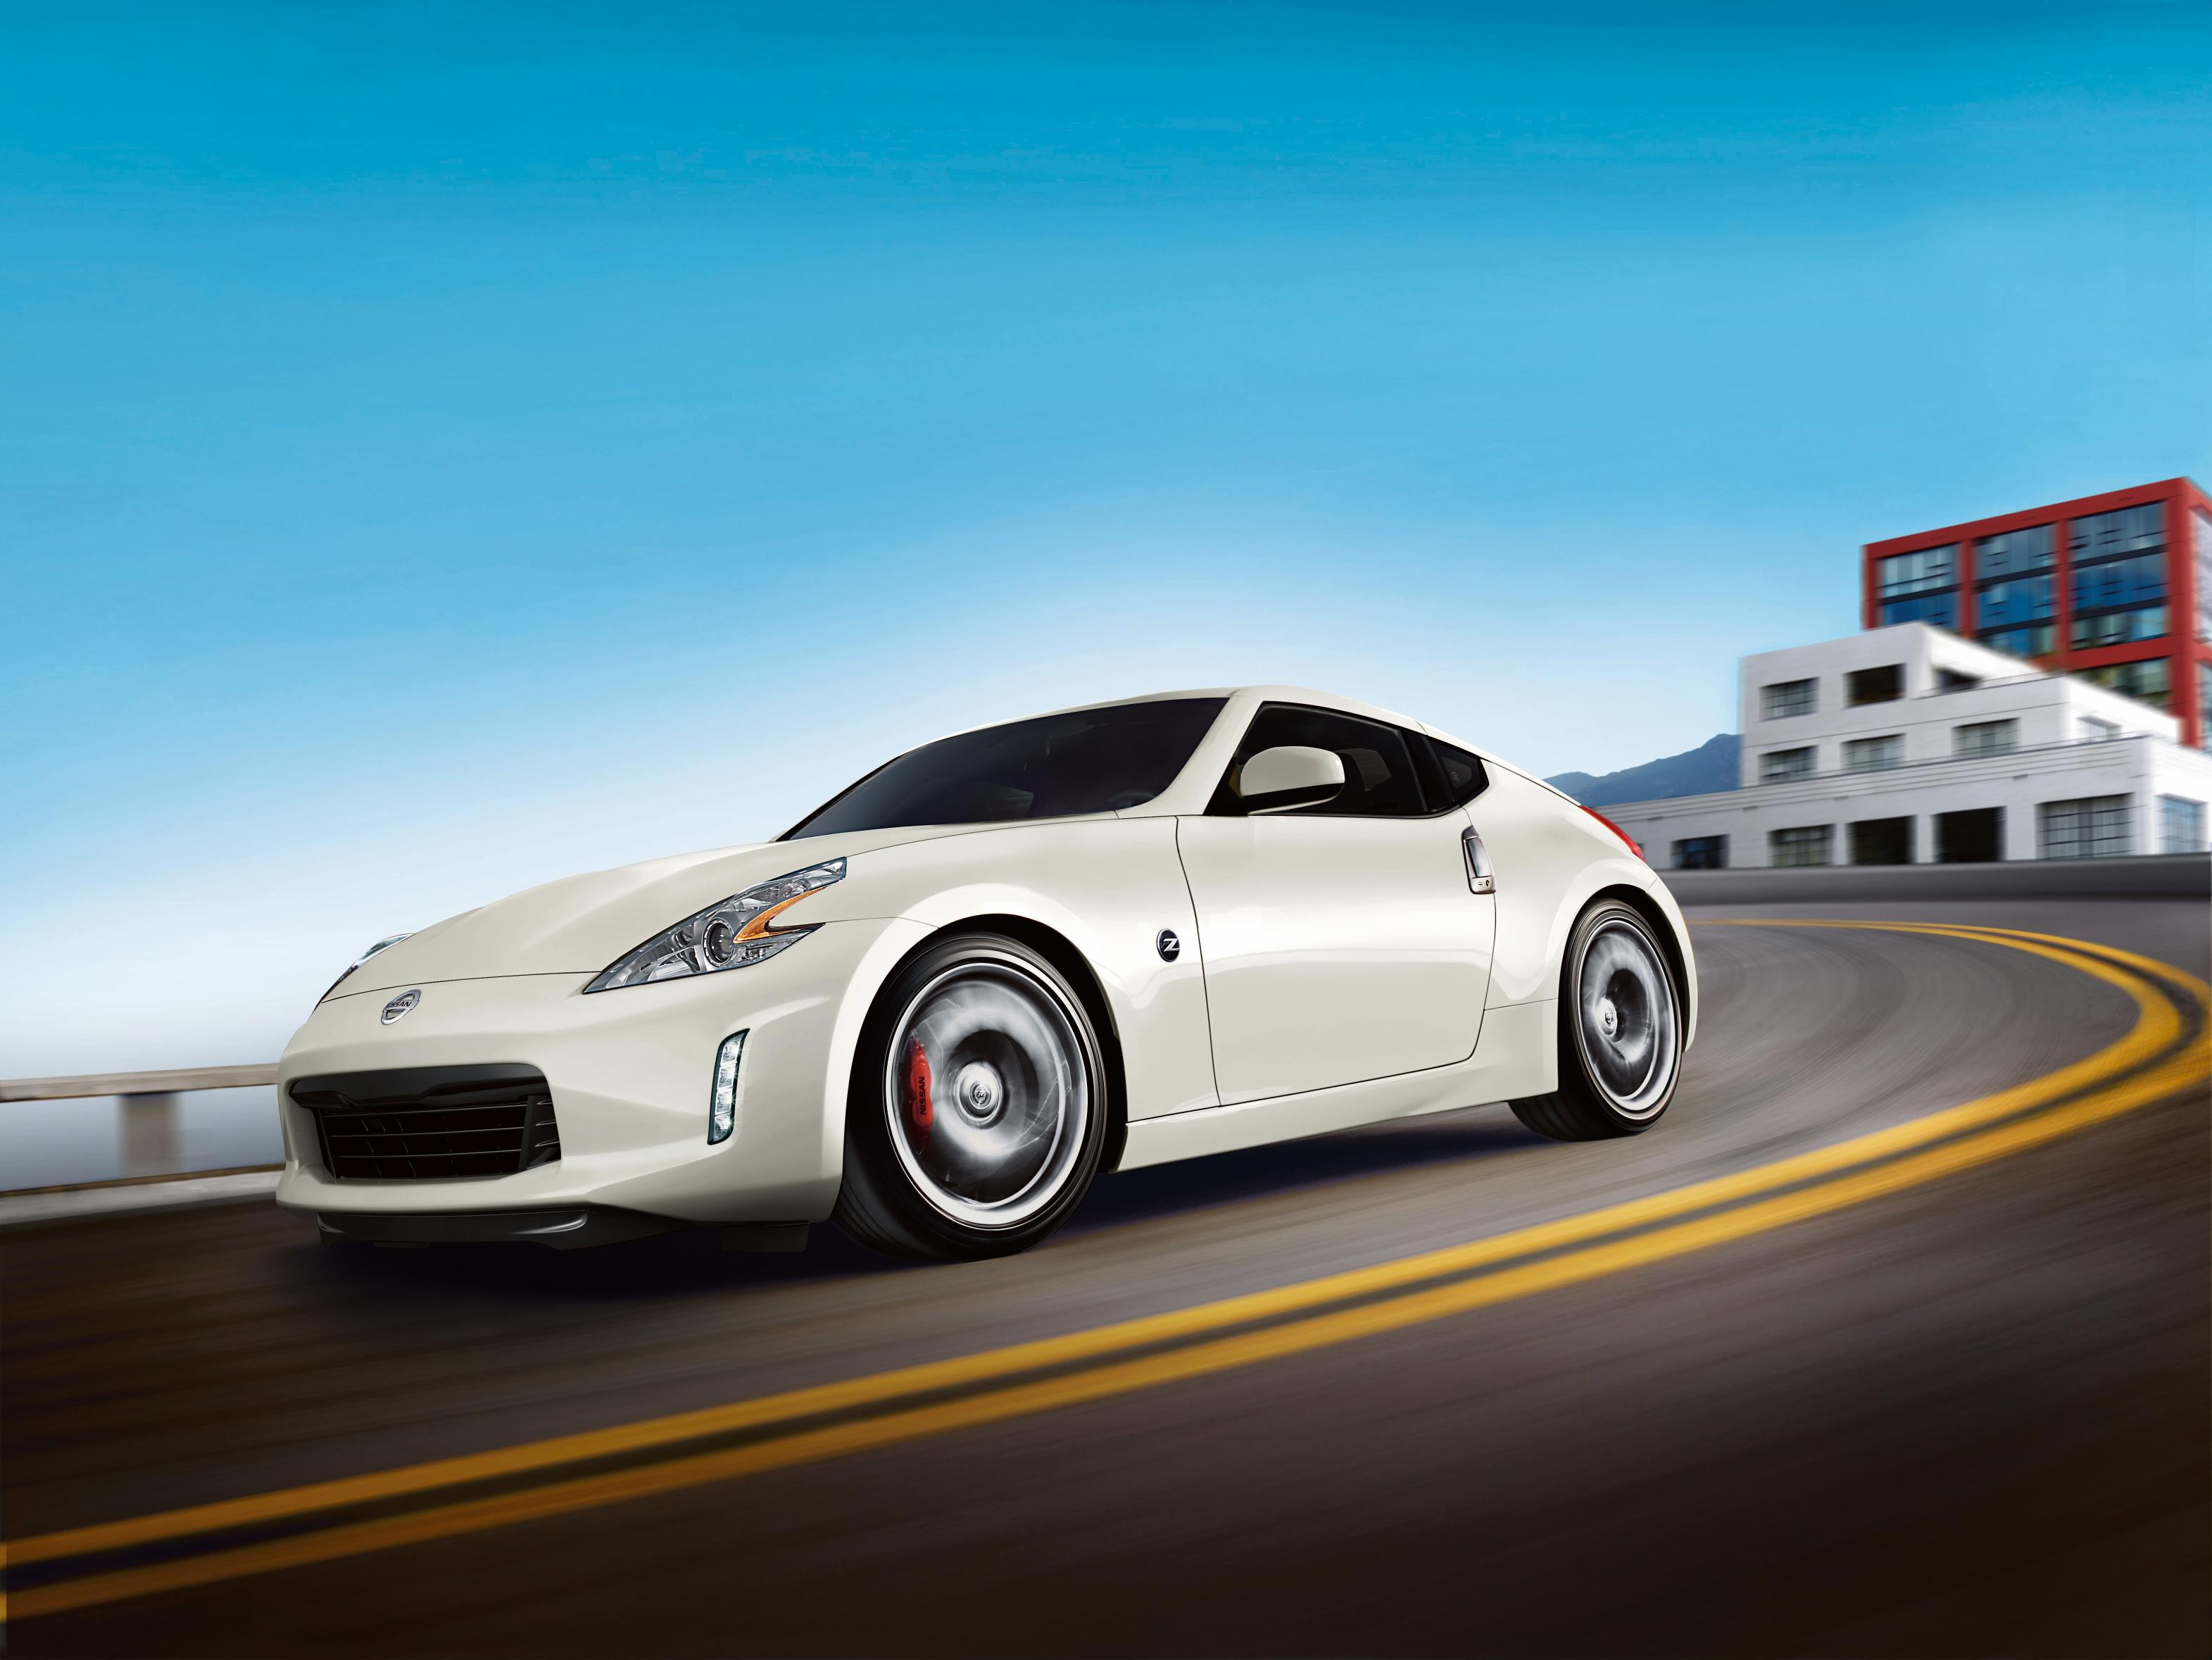 2017 nissan 370z priced from 30 825 most expensive model costs 50 235 autoevolution. Black Bedroom Furniture Sets. Home Design Ideas